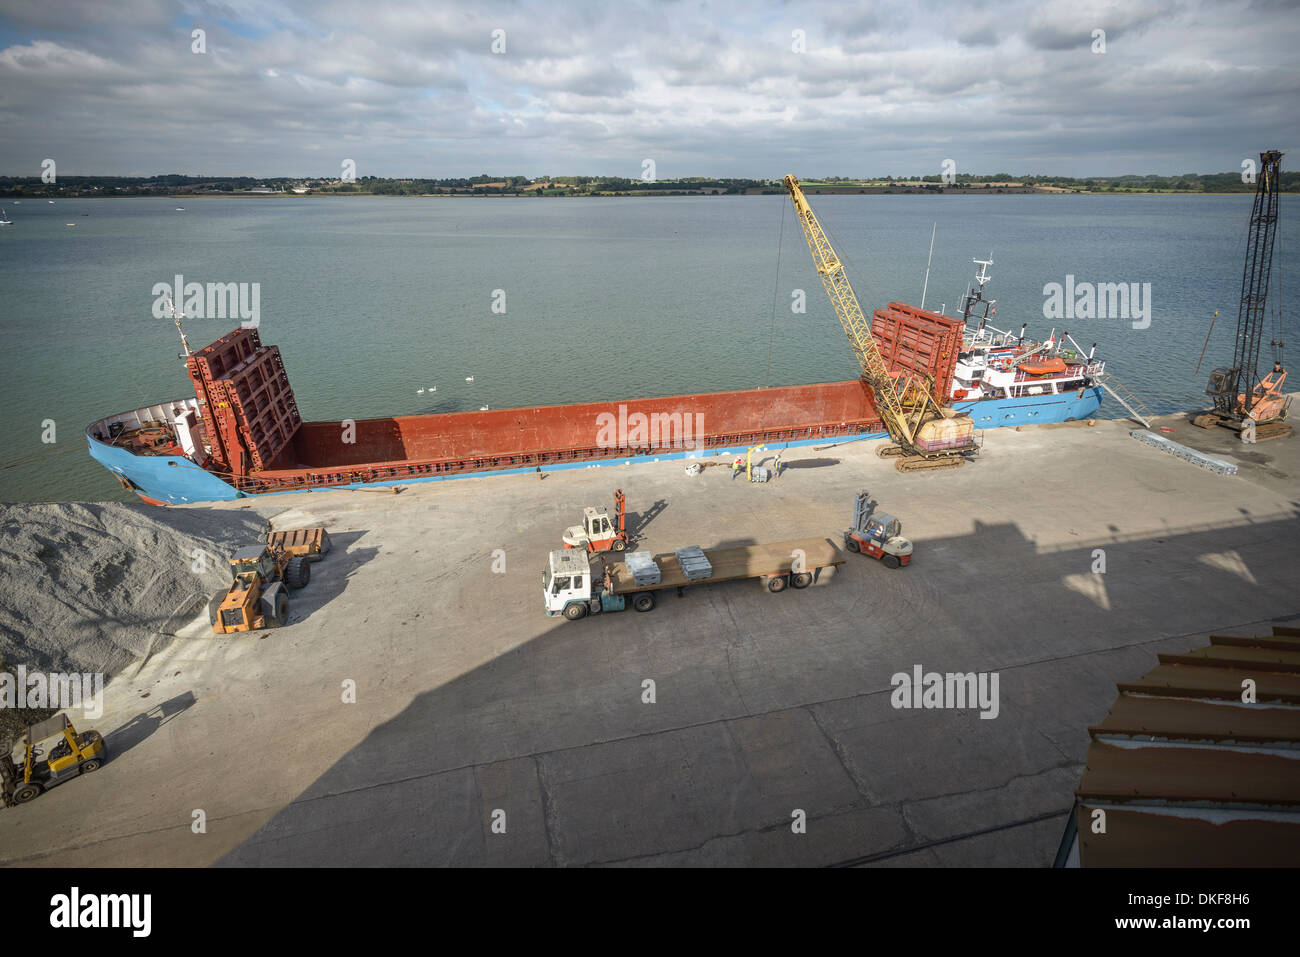 High angle view of crane loading bulk cargo ship at river port - Stock Image